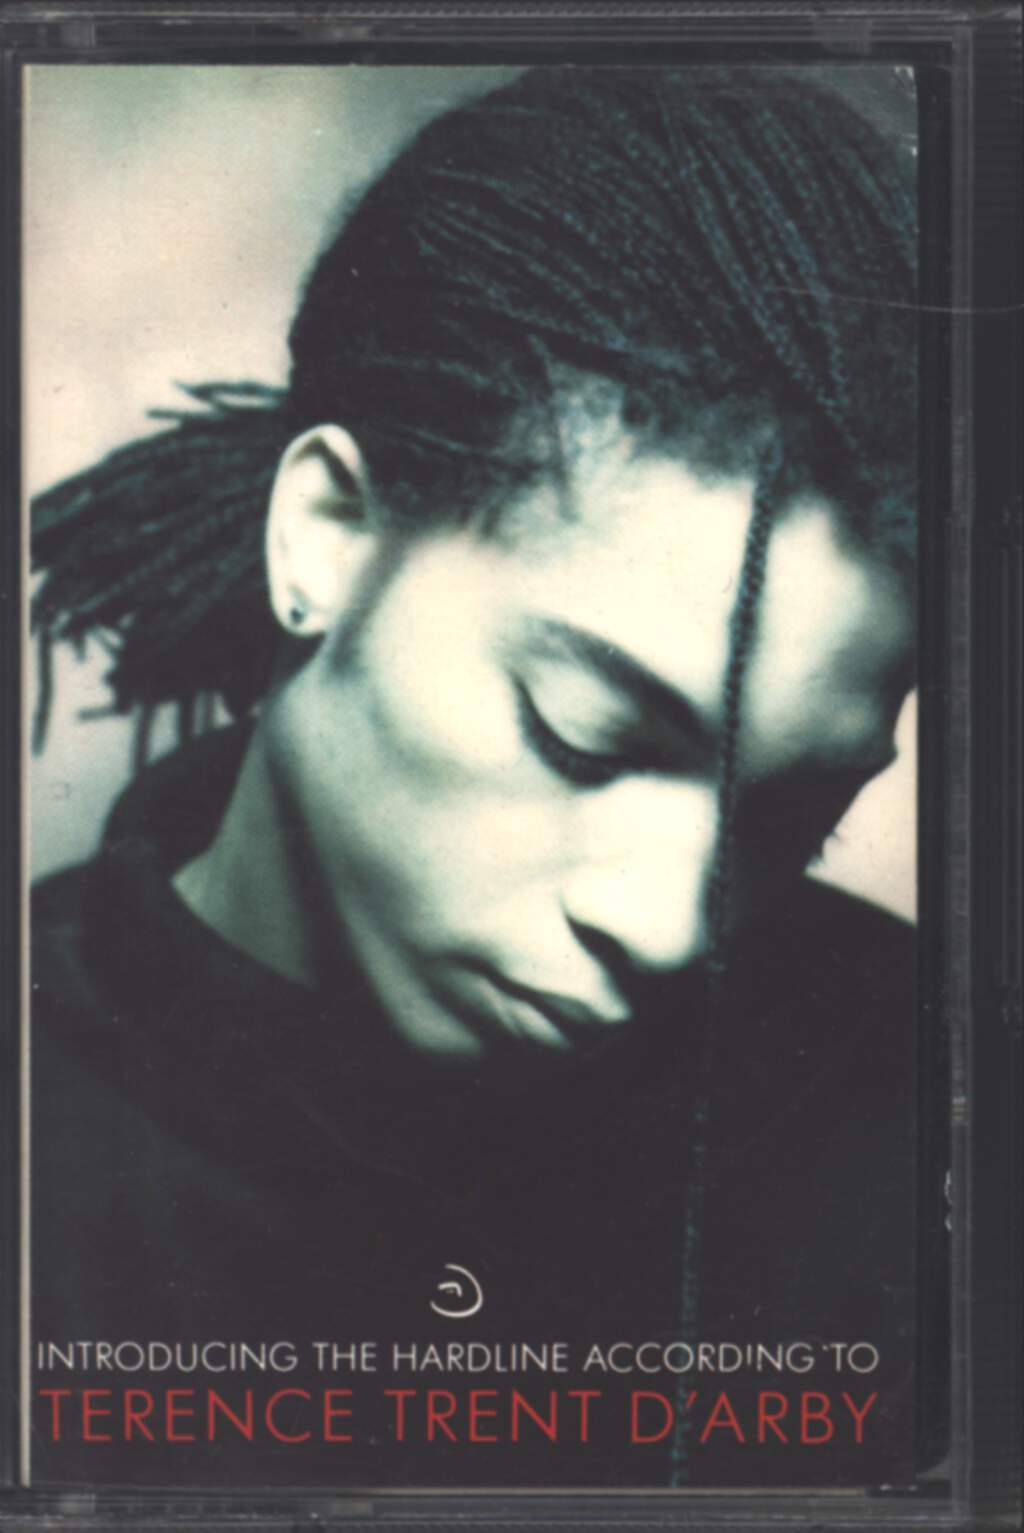 Terence Trent D'arby: Introducing The Hardline According To Terence Trent D'Arby, Tape